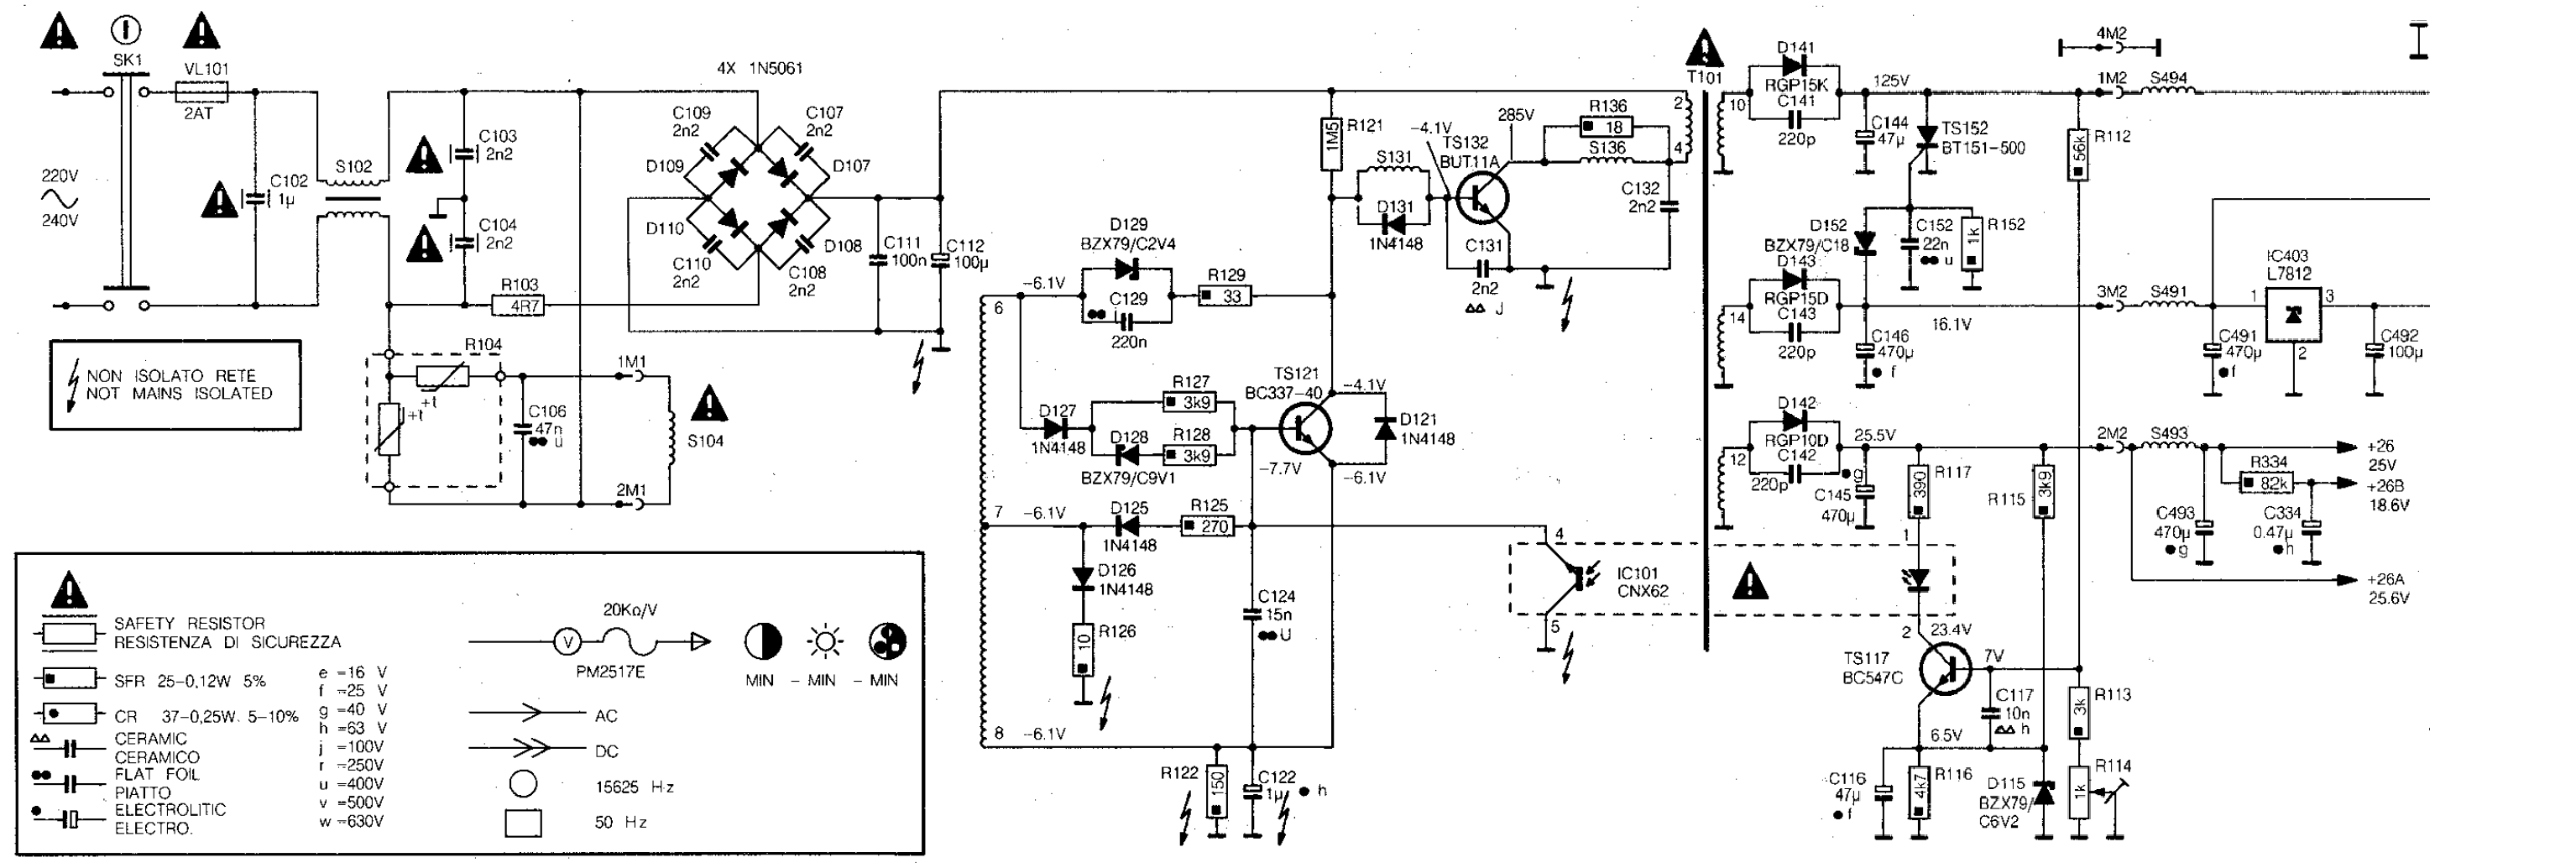 new_schematic2.png